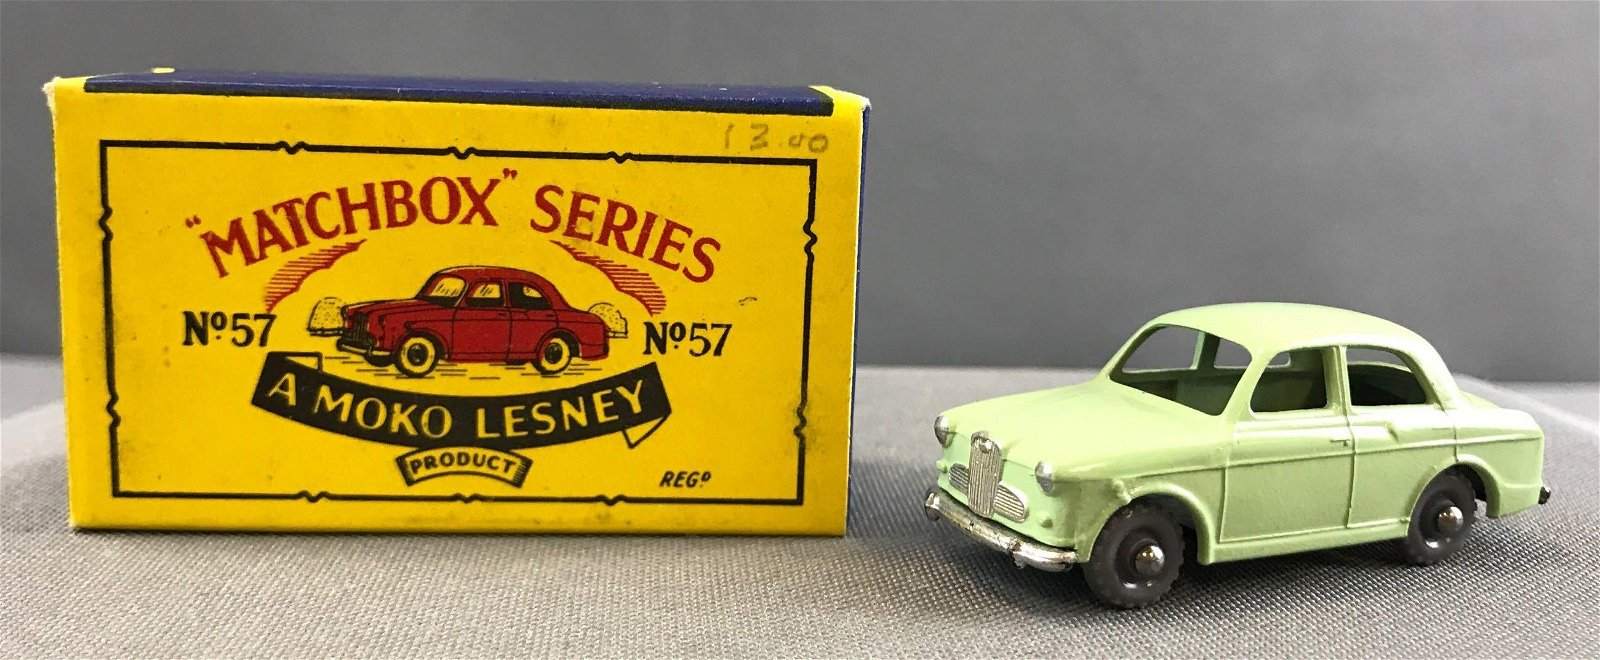 Matchbox No. 57 Wolseley 1500 die cast vehicle with